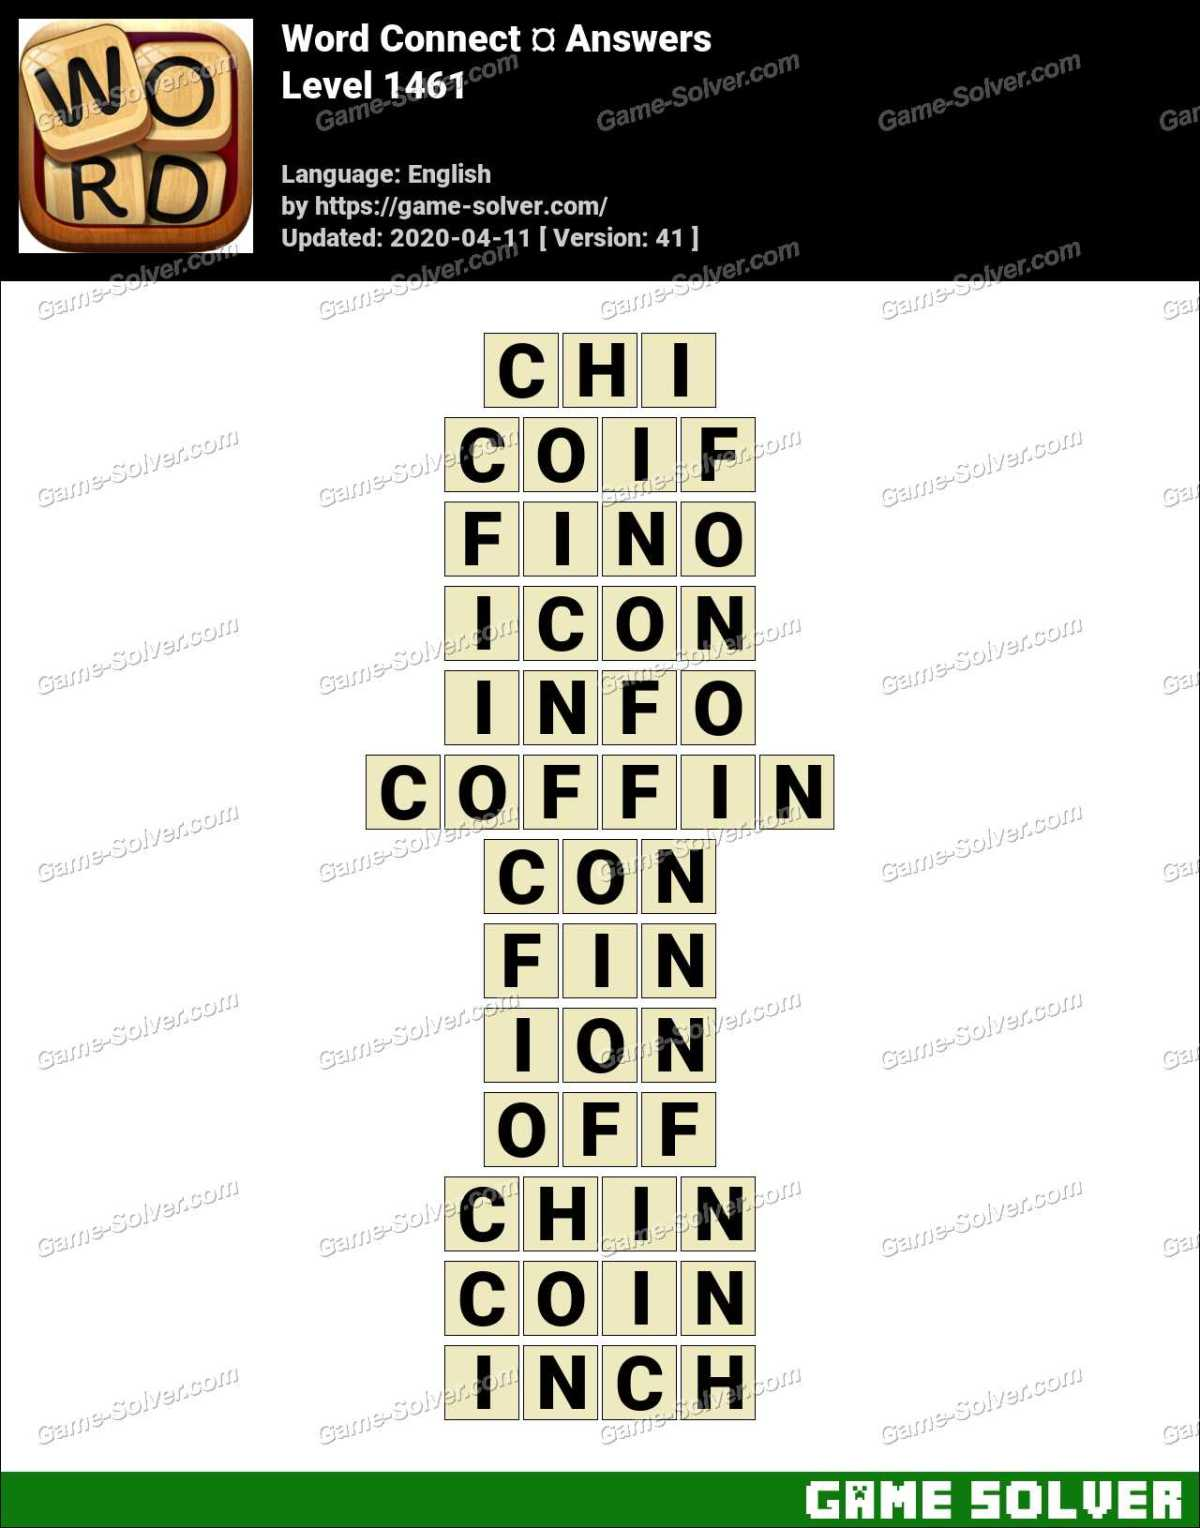 Word Connect Level 1461 Answers